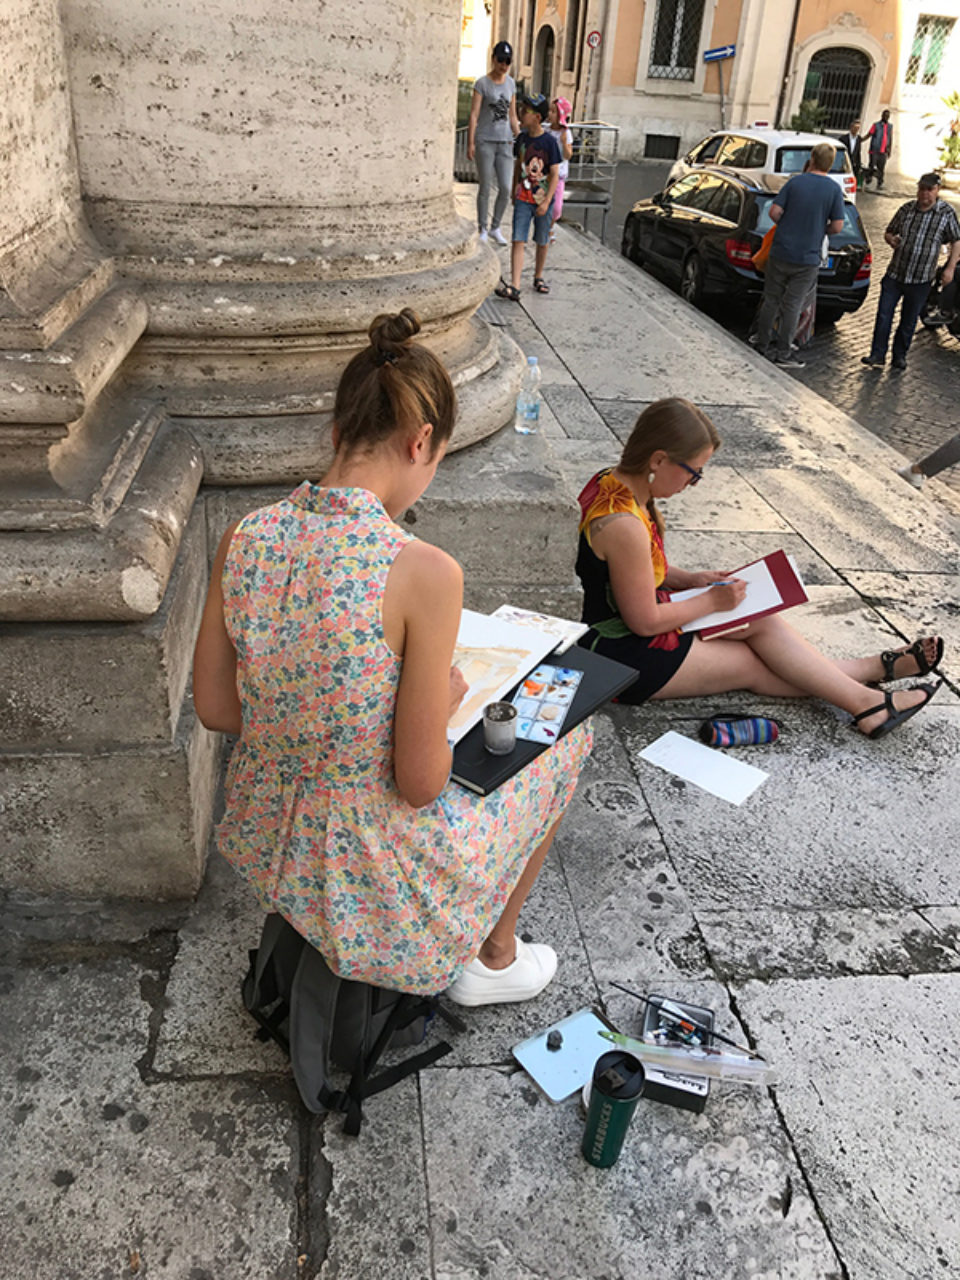 Tour participants sketch at Piazza Sant'Ignazio in Rome